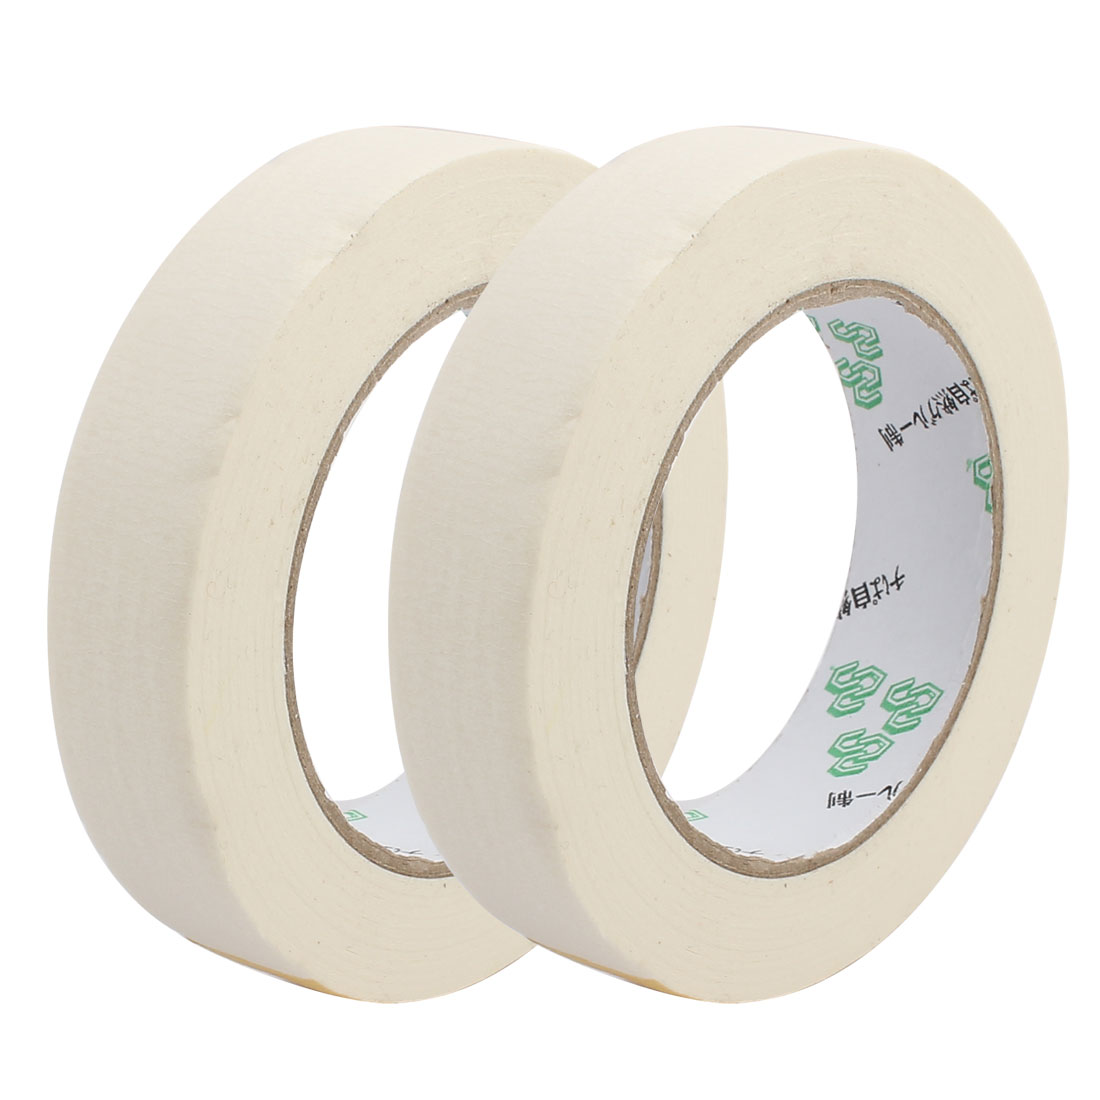 2PCS 25mm Width Adhesive Paper Painting Writing Decoration Tape White 50M Length